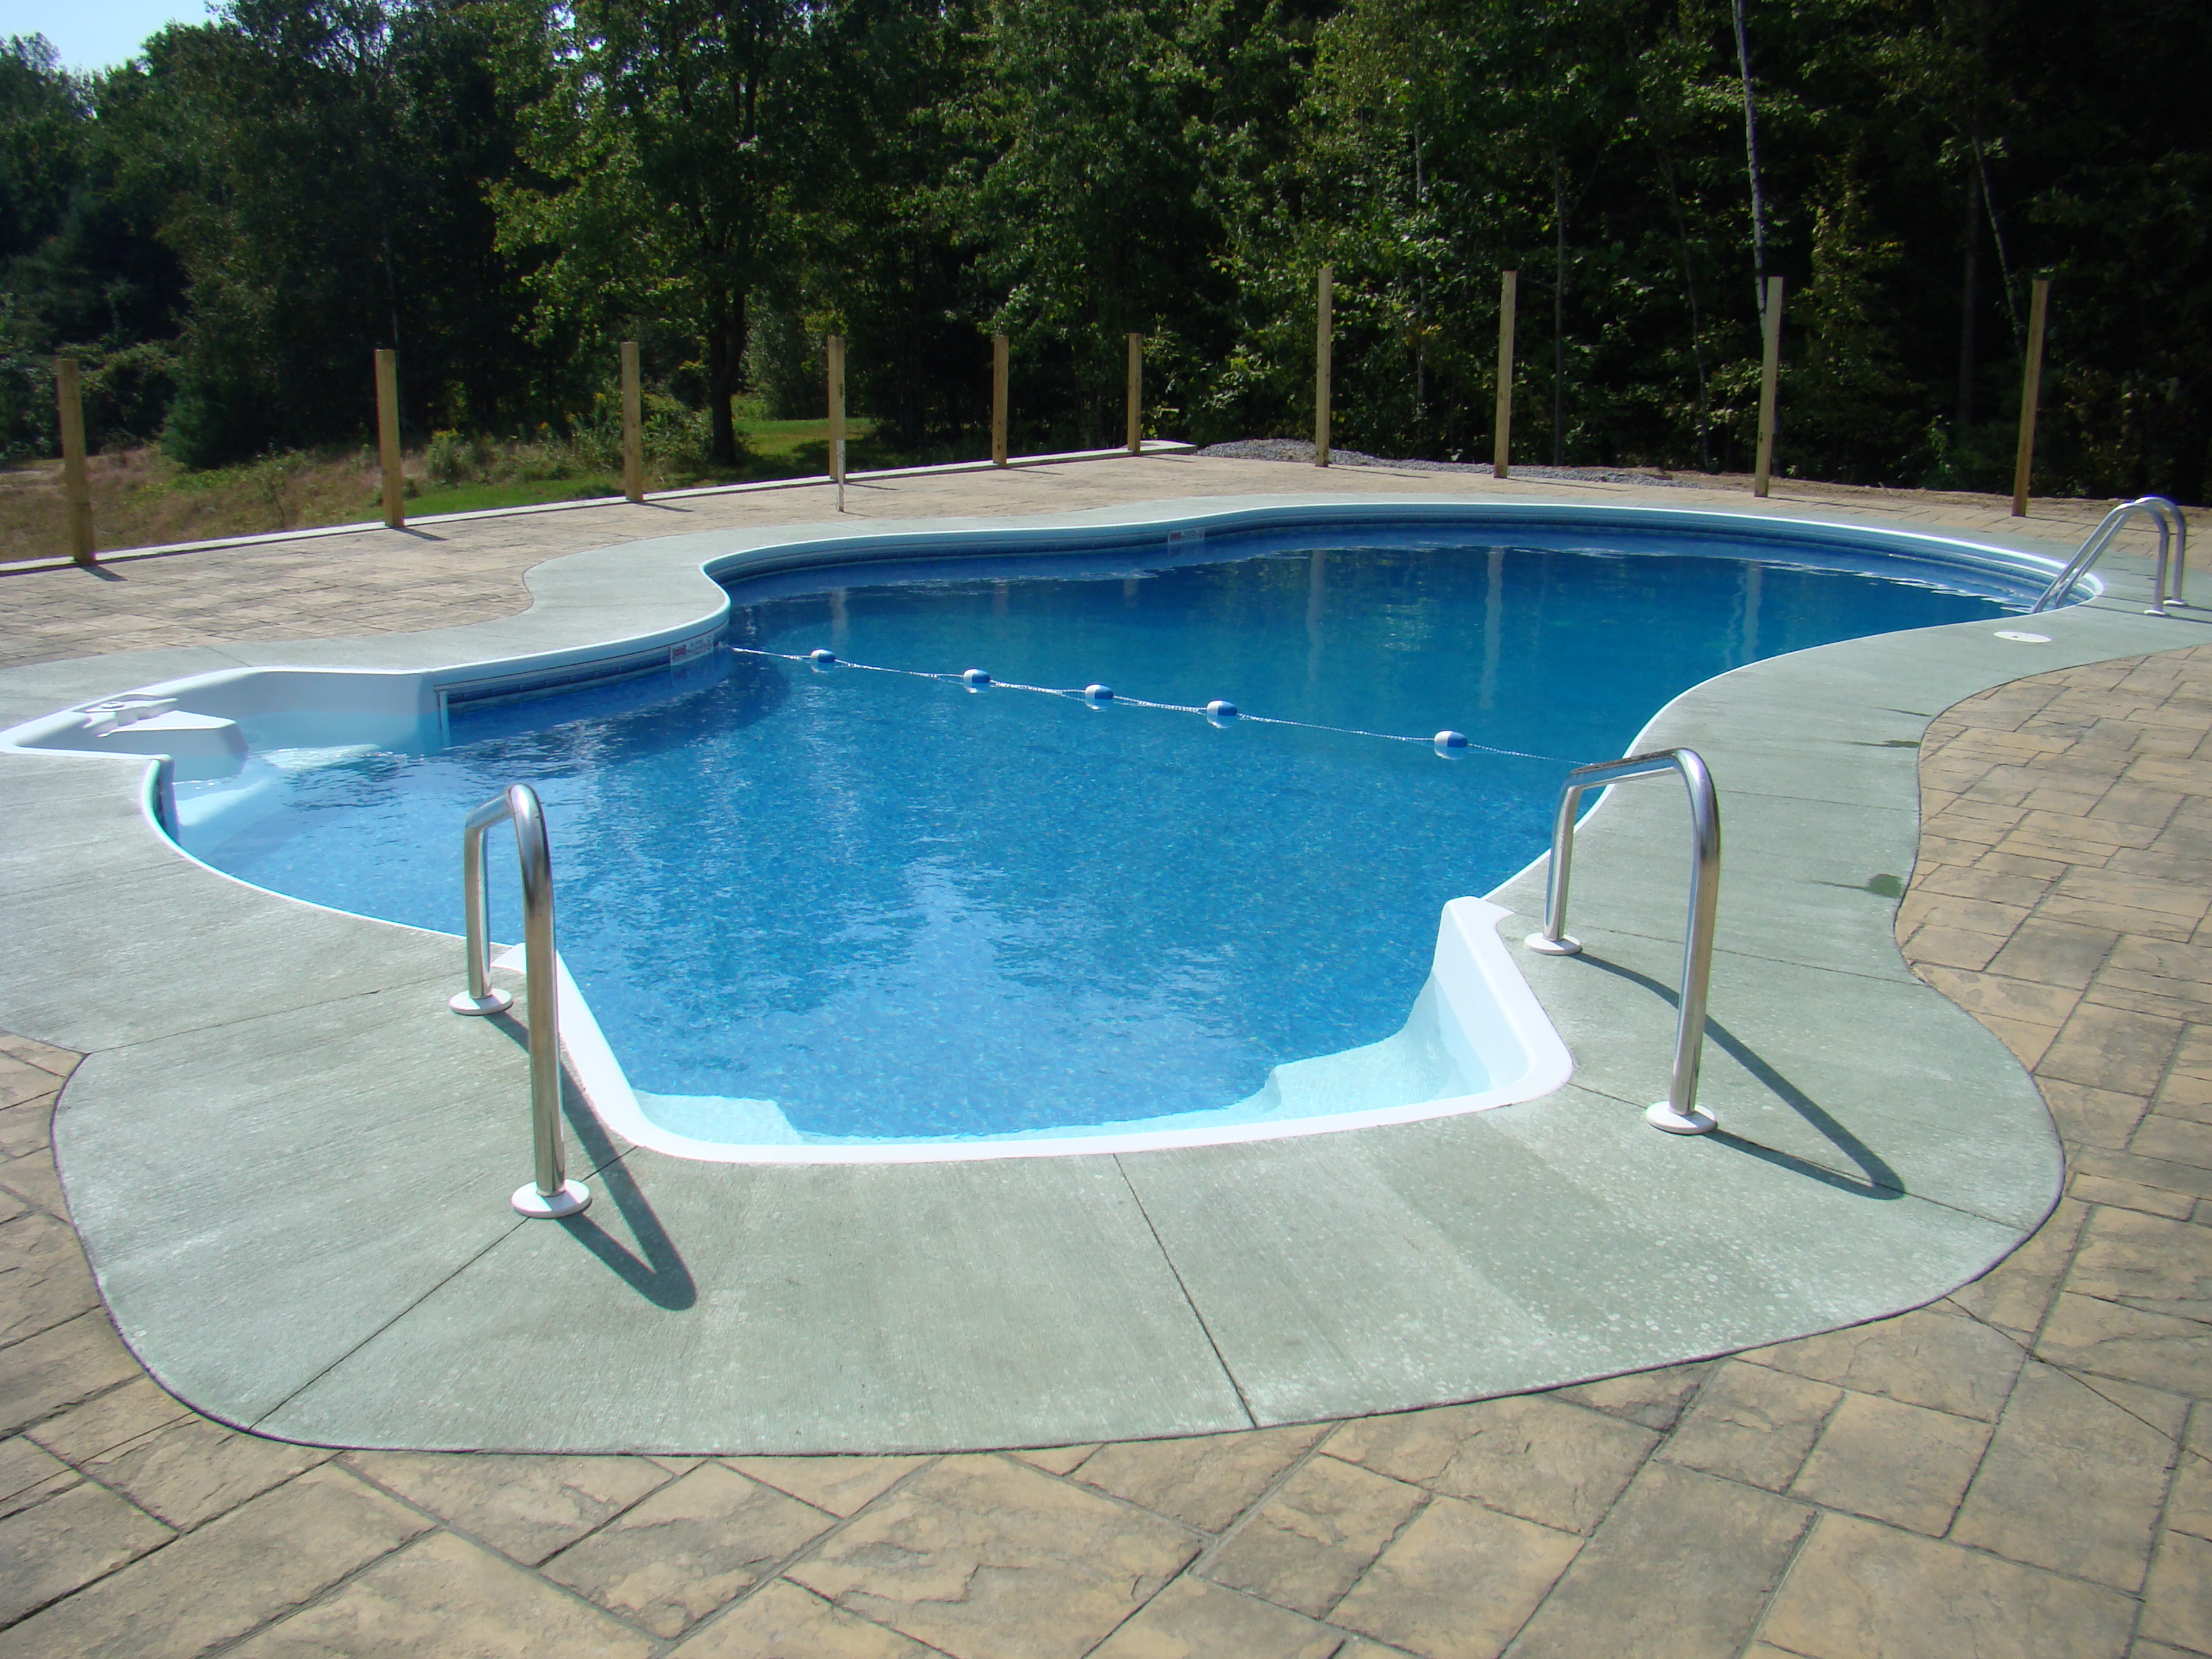 Fox pool 17 x 33 lagoon w buddy seat and 6 walk in stairs branon 39 s pools St albans swimming pool timetable